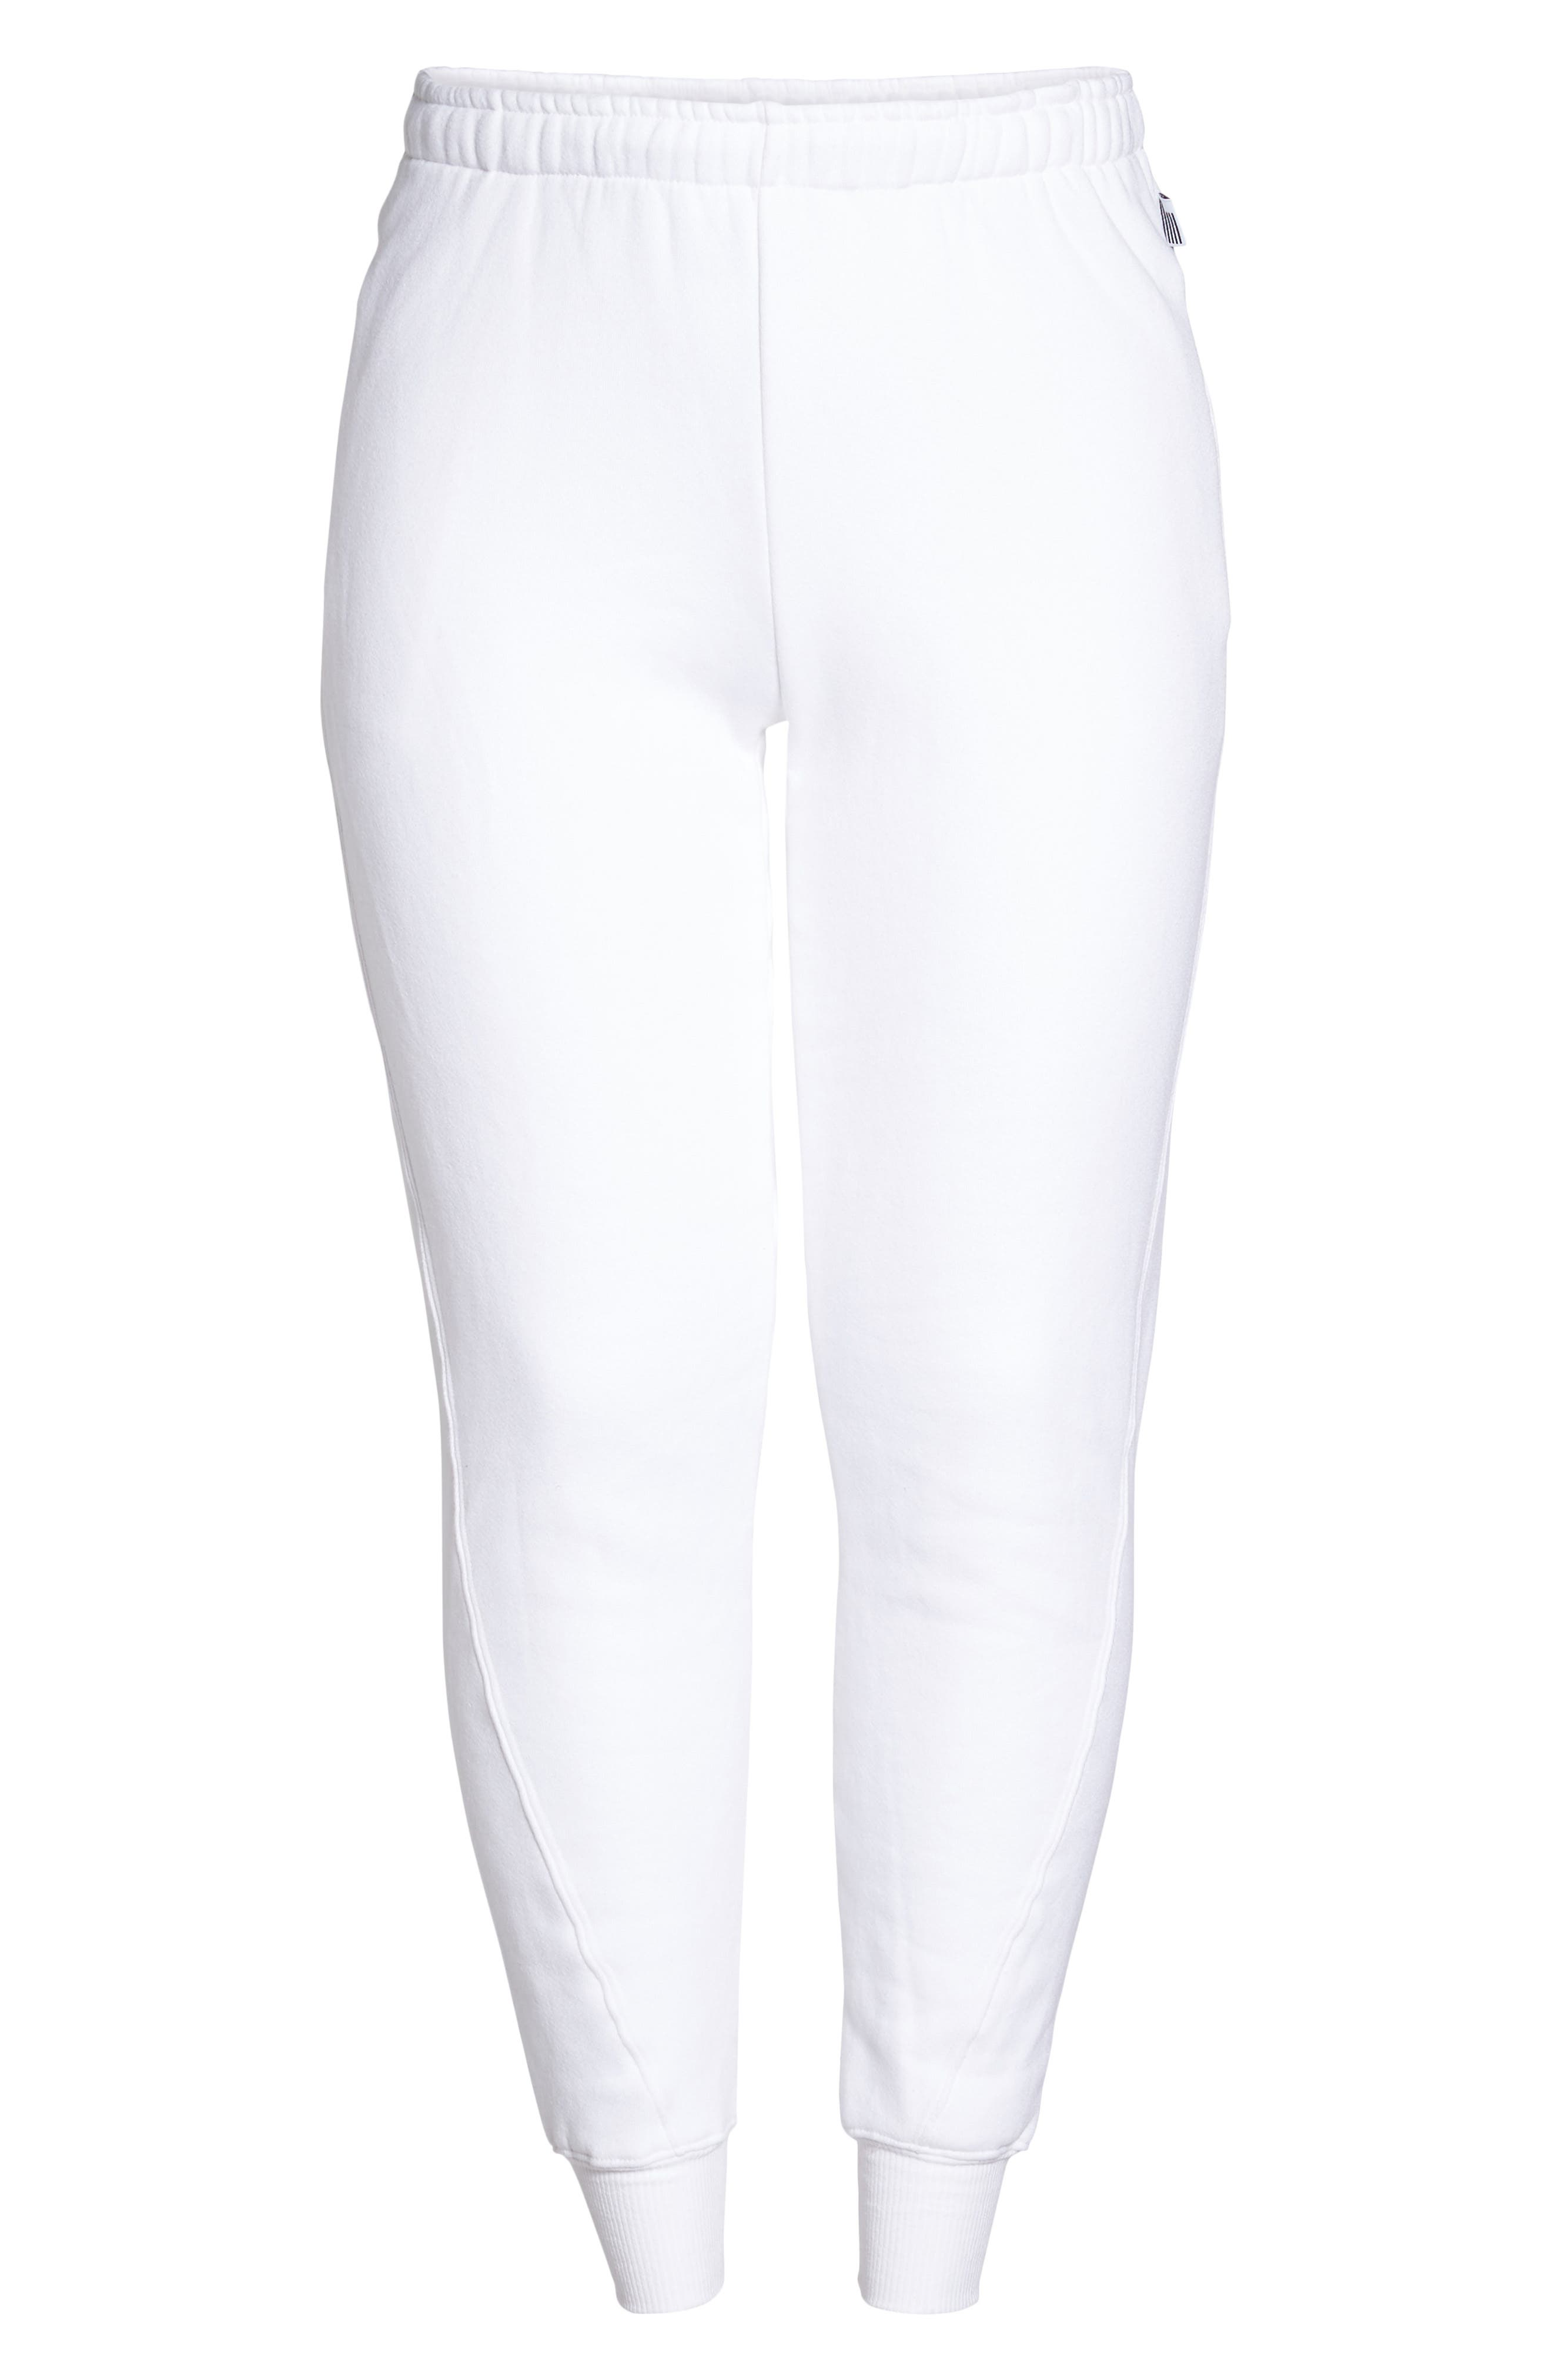 Good Sweats The Twisted Seam Pants,                             Alternate thumbnail 10, color,                             Off White